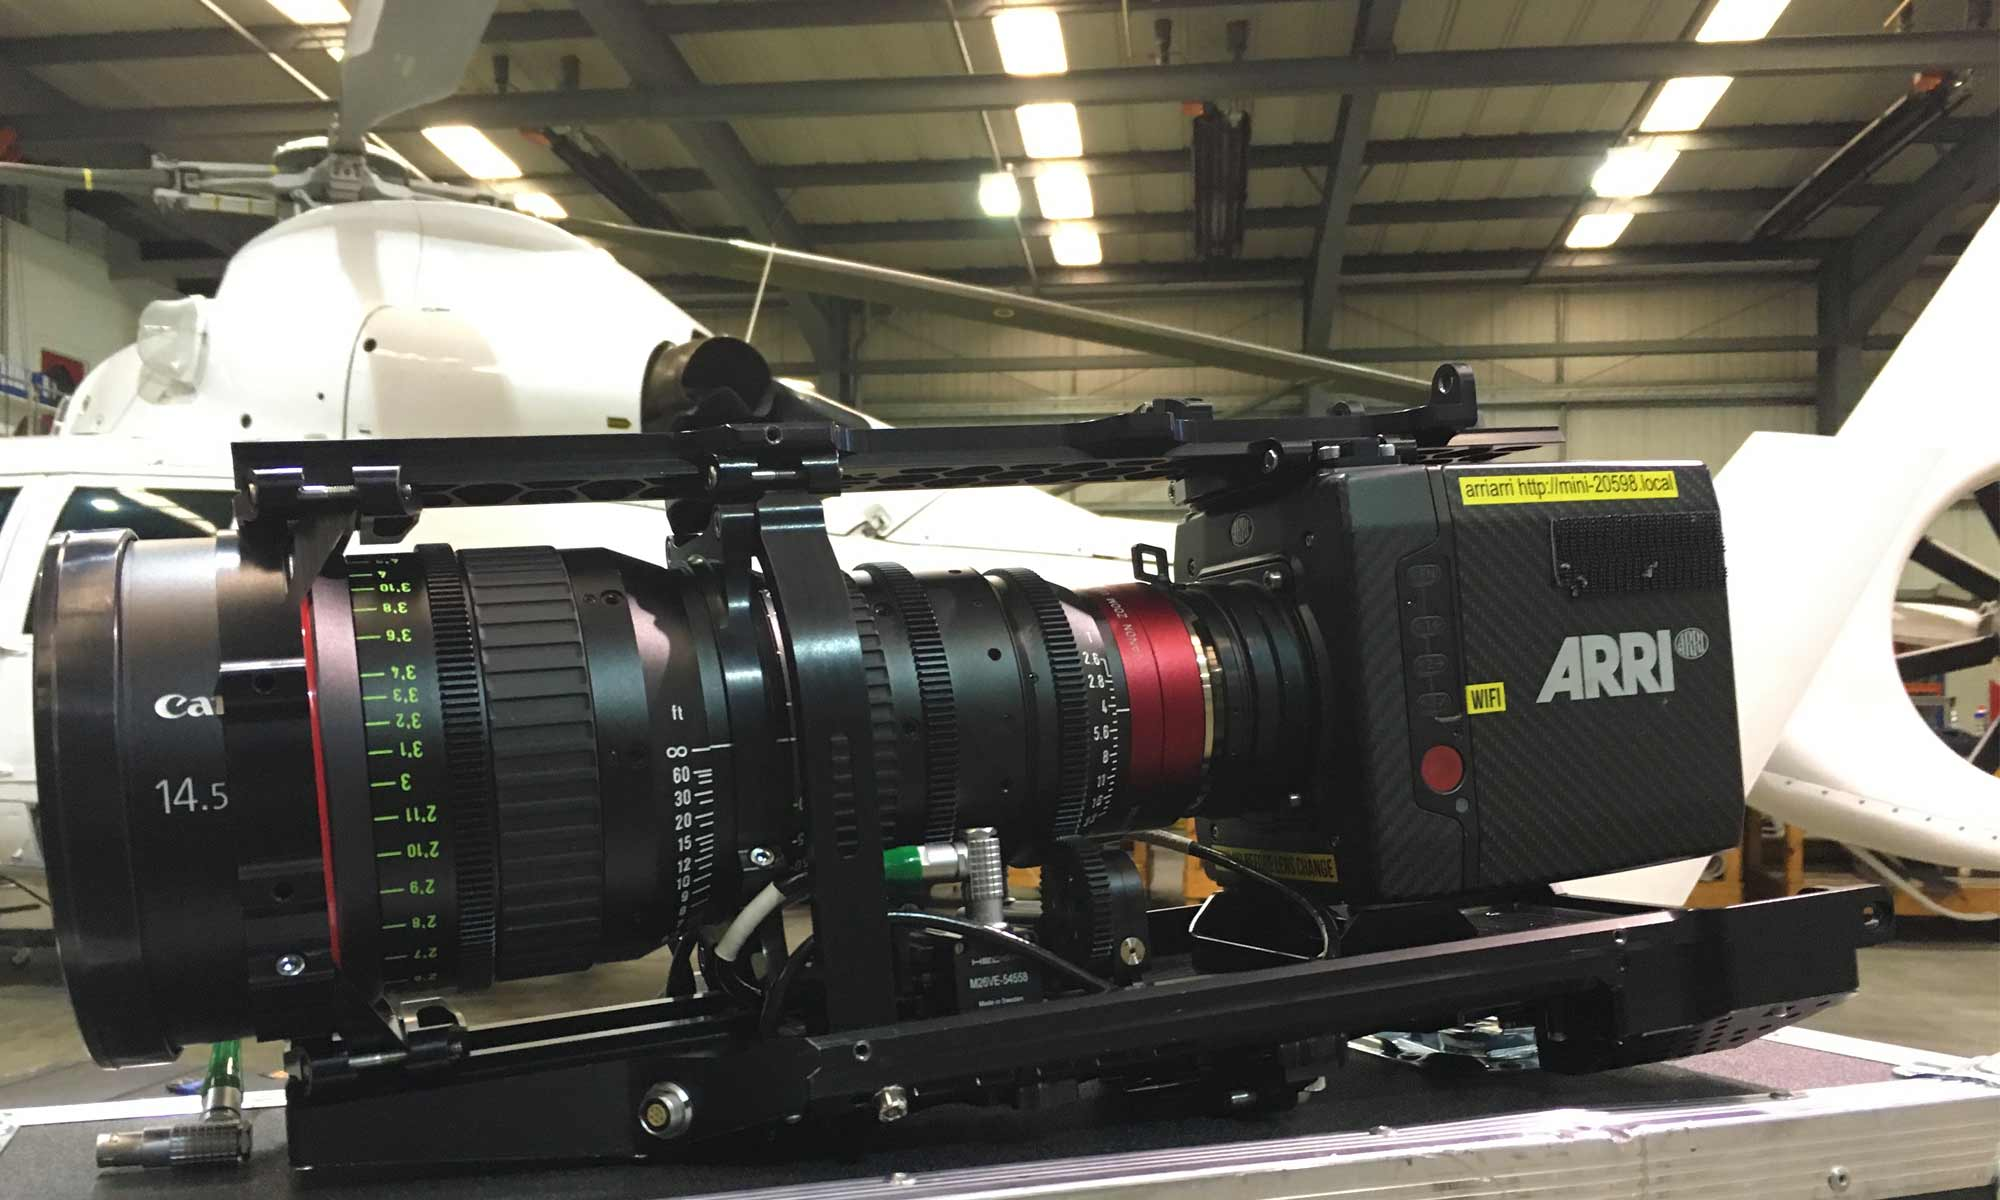 Arri Alexa Mini camera Shotover F1 payload